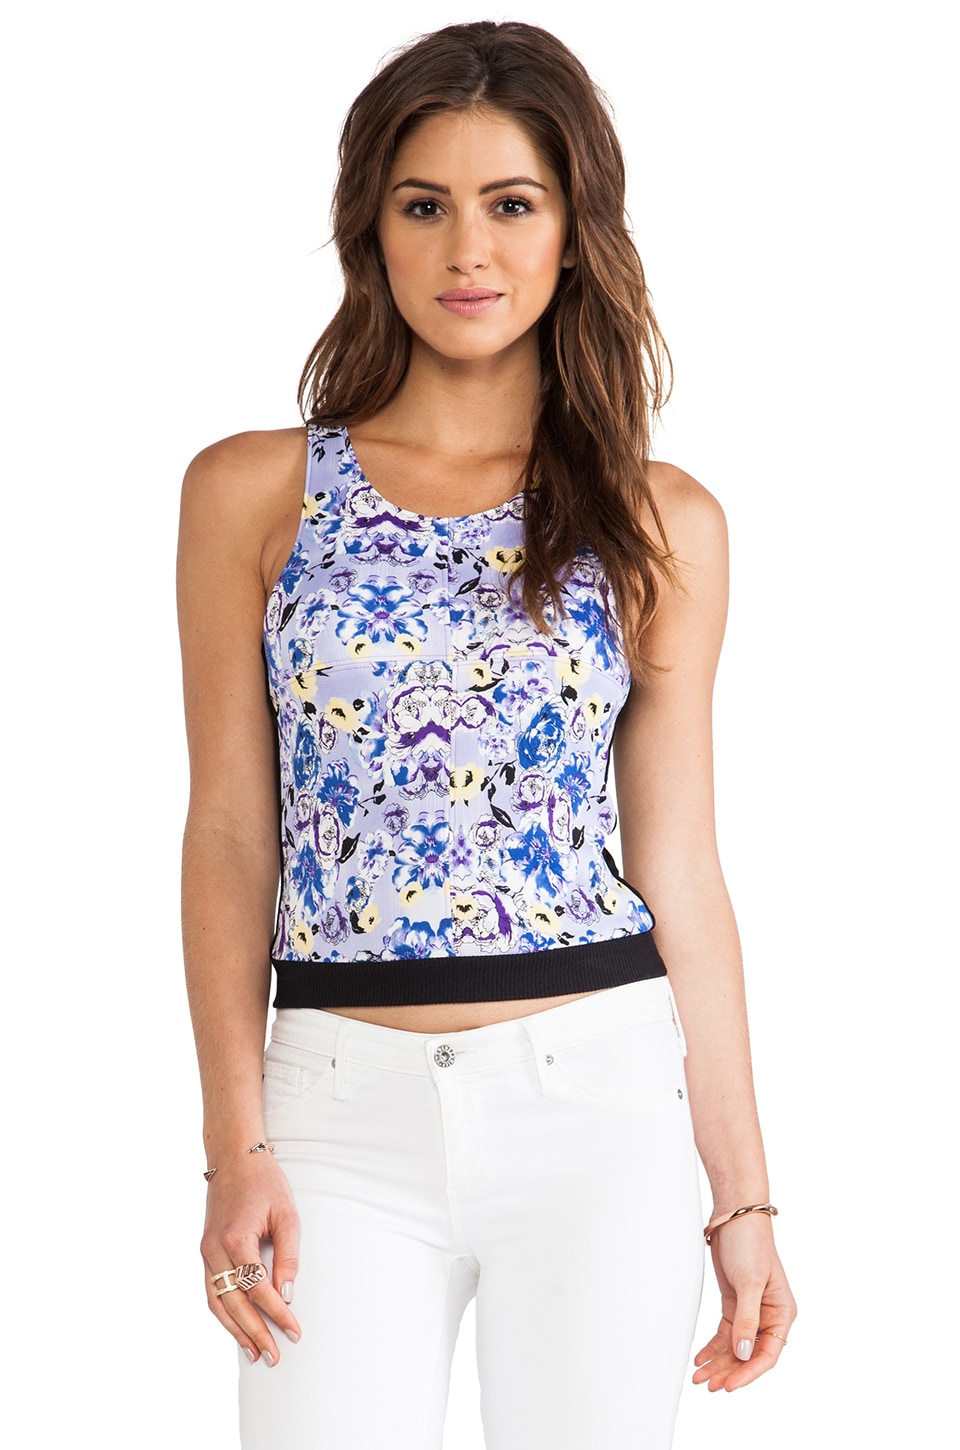 T-Bags LosAngeles Cropped Tank in Lilac Floral